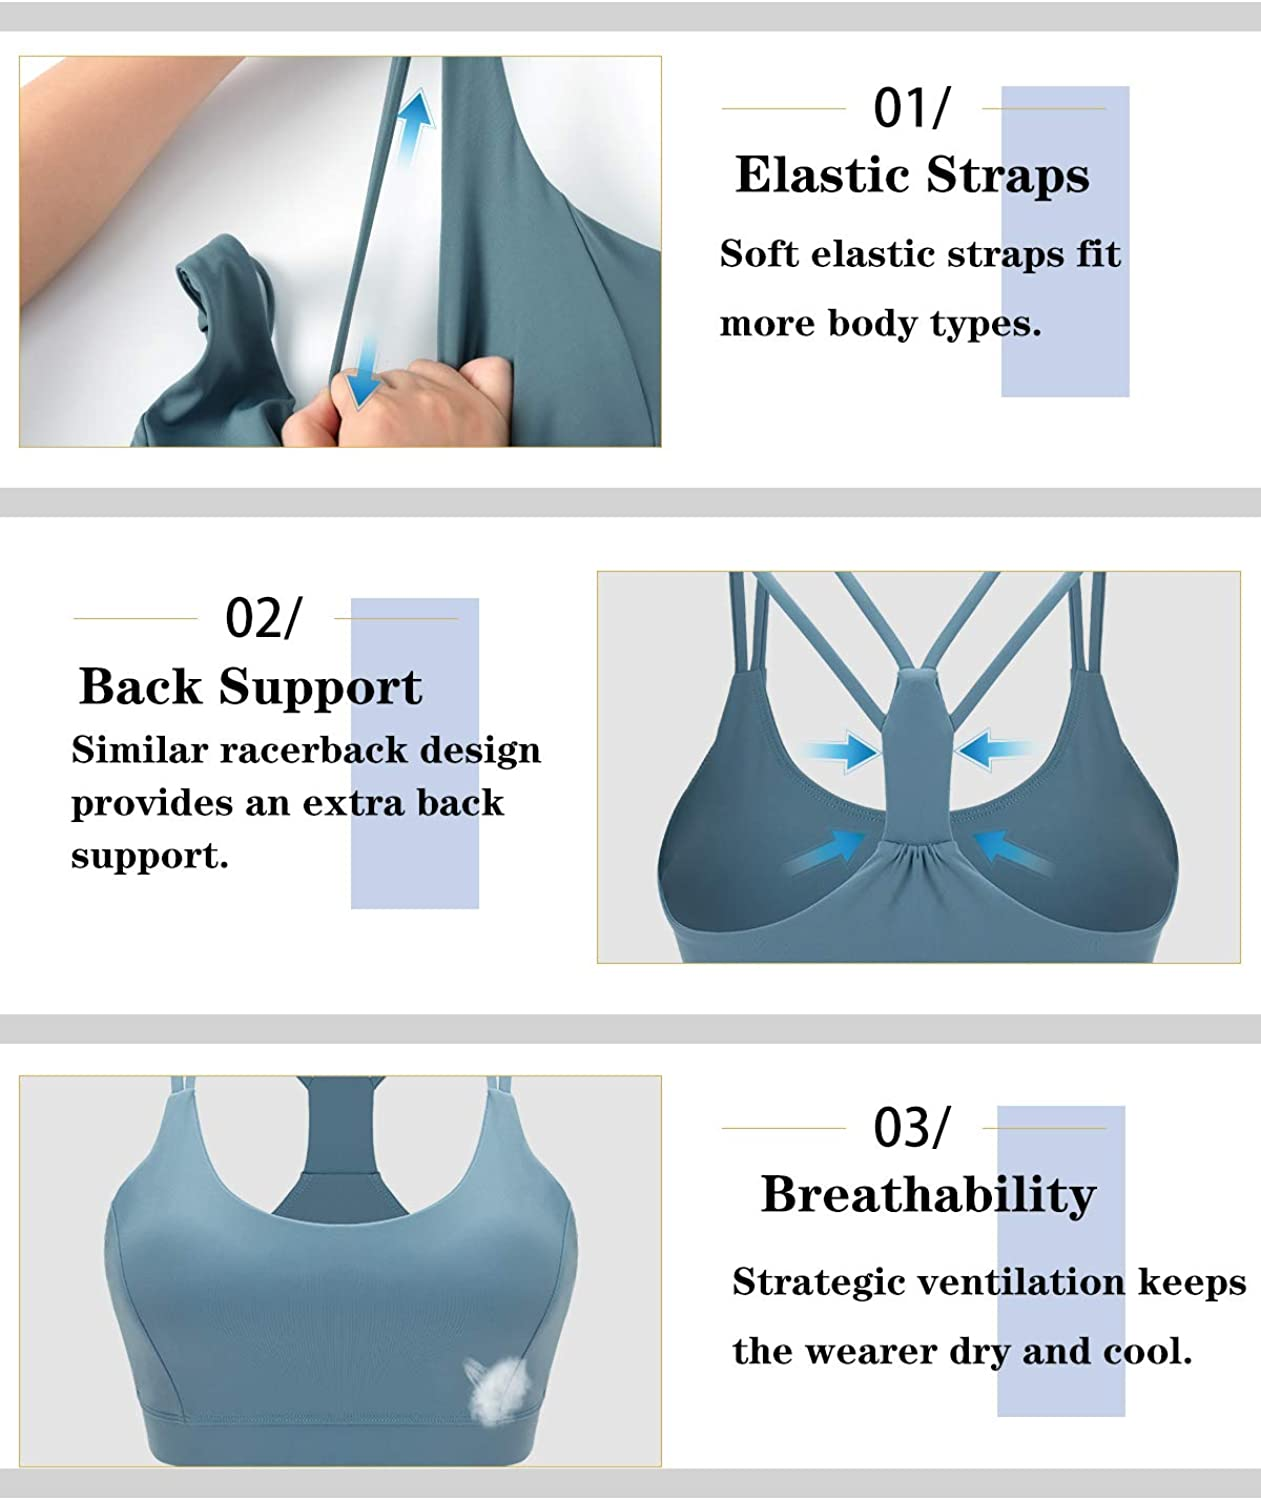 RUNNING GIRL Strappy Sports Bra,Medium Support Padded Yoga Bra with Removable Cups Ultra Stretch Workout Bra for Women